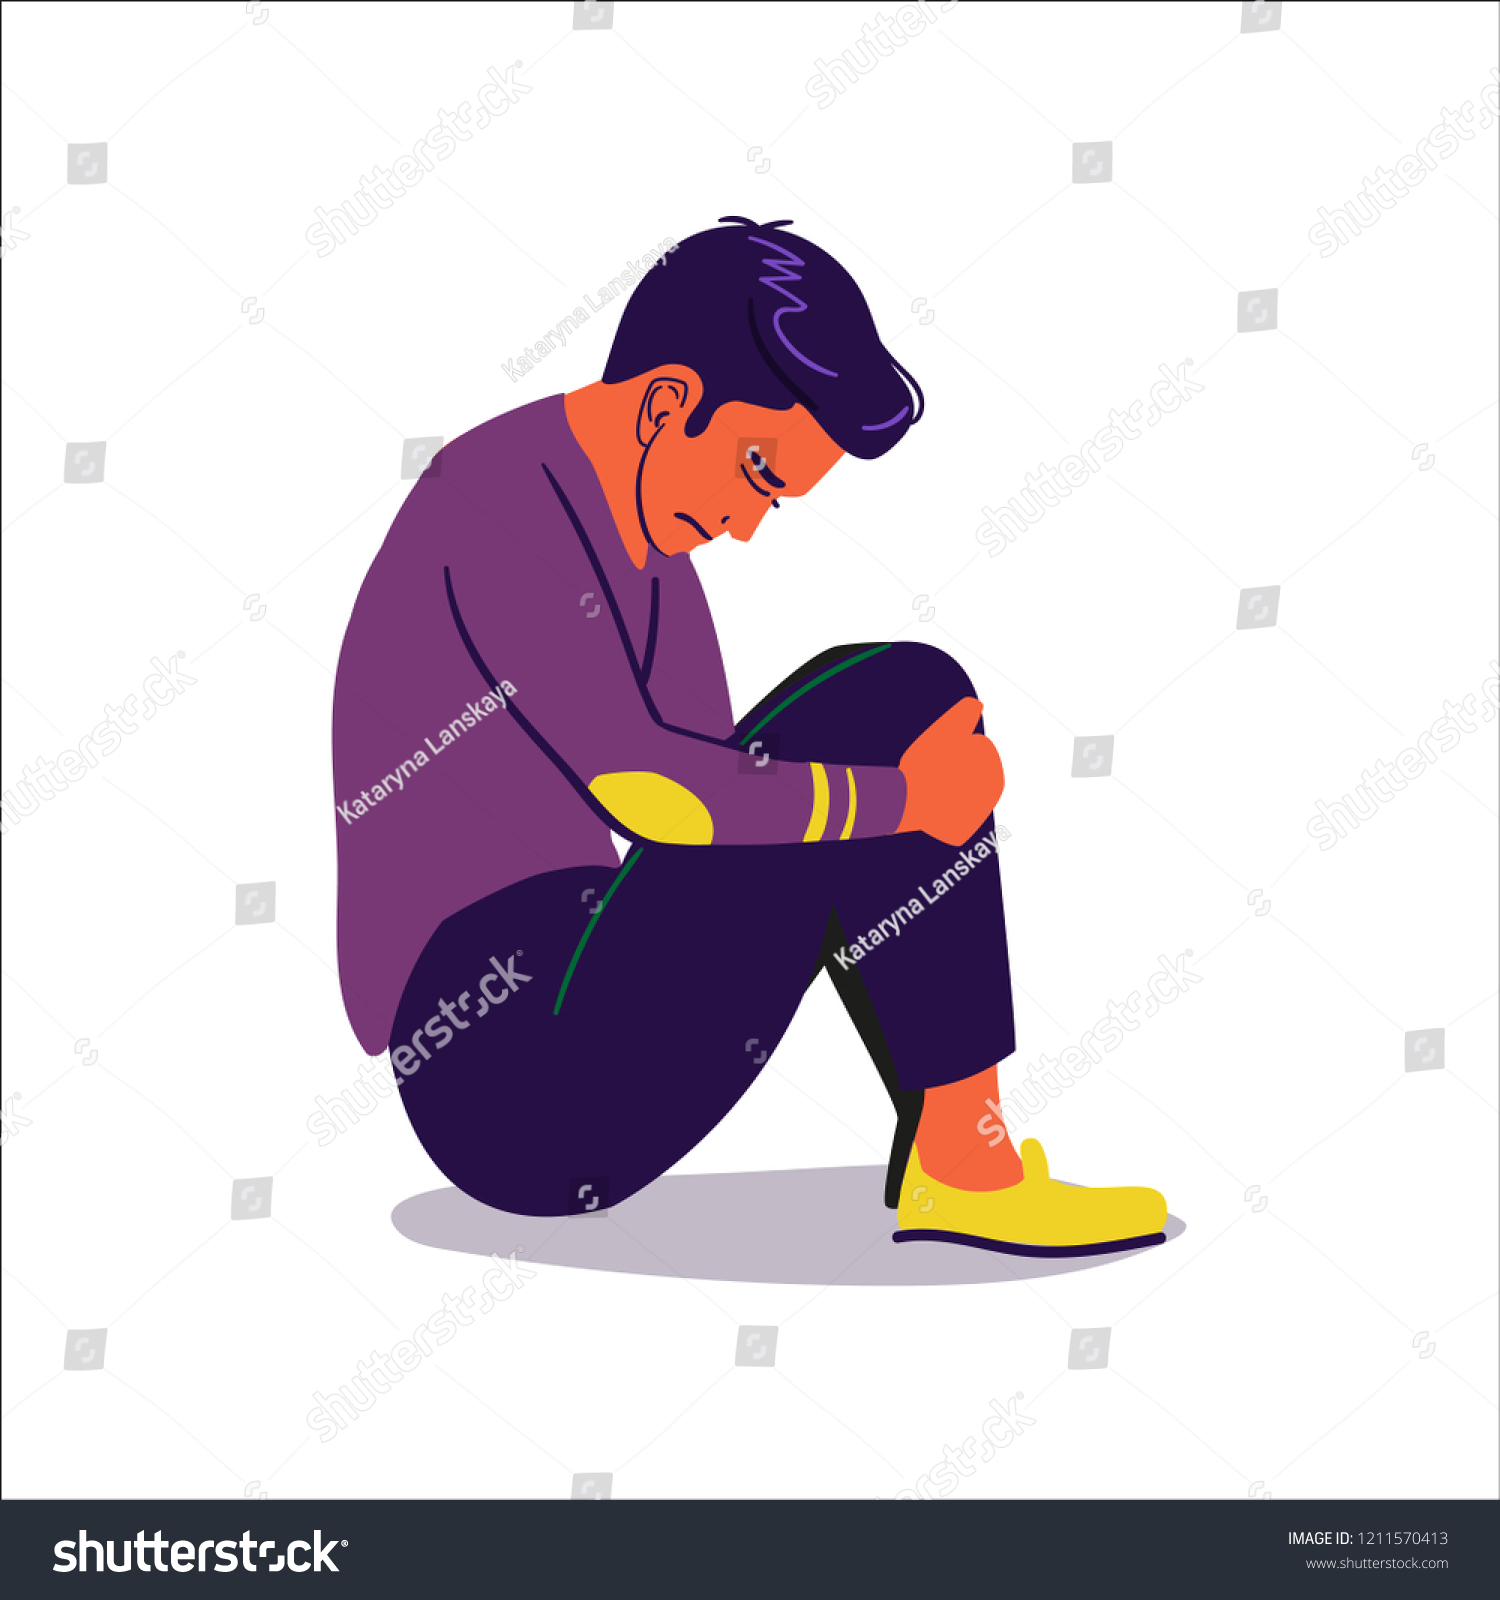 stock-vector-sad-boy-sitting-on-the-floor-illustration-of-depressed-young-man-1211570413